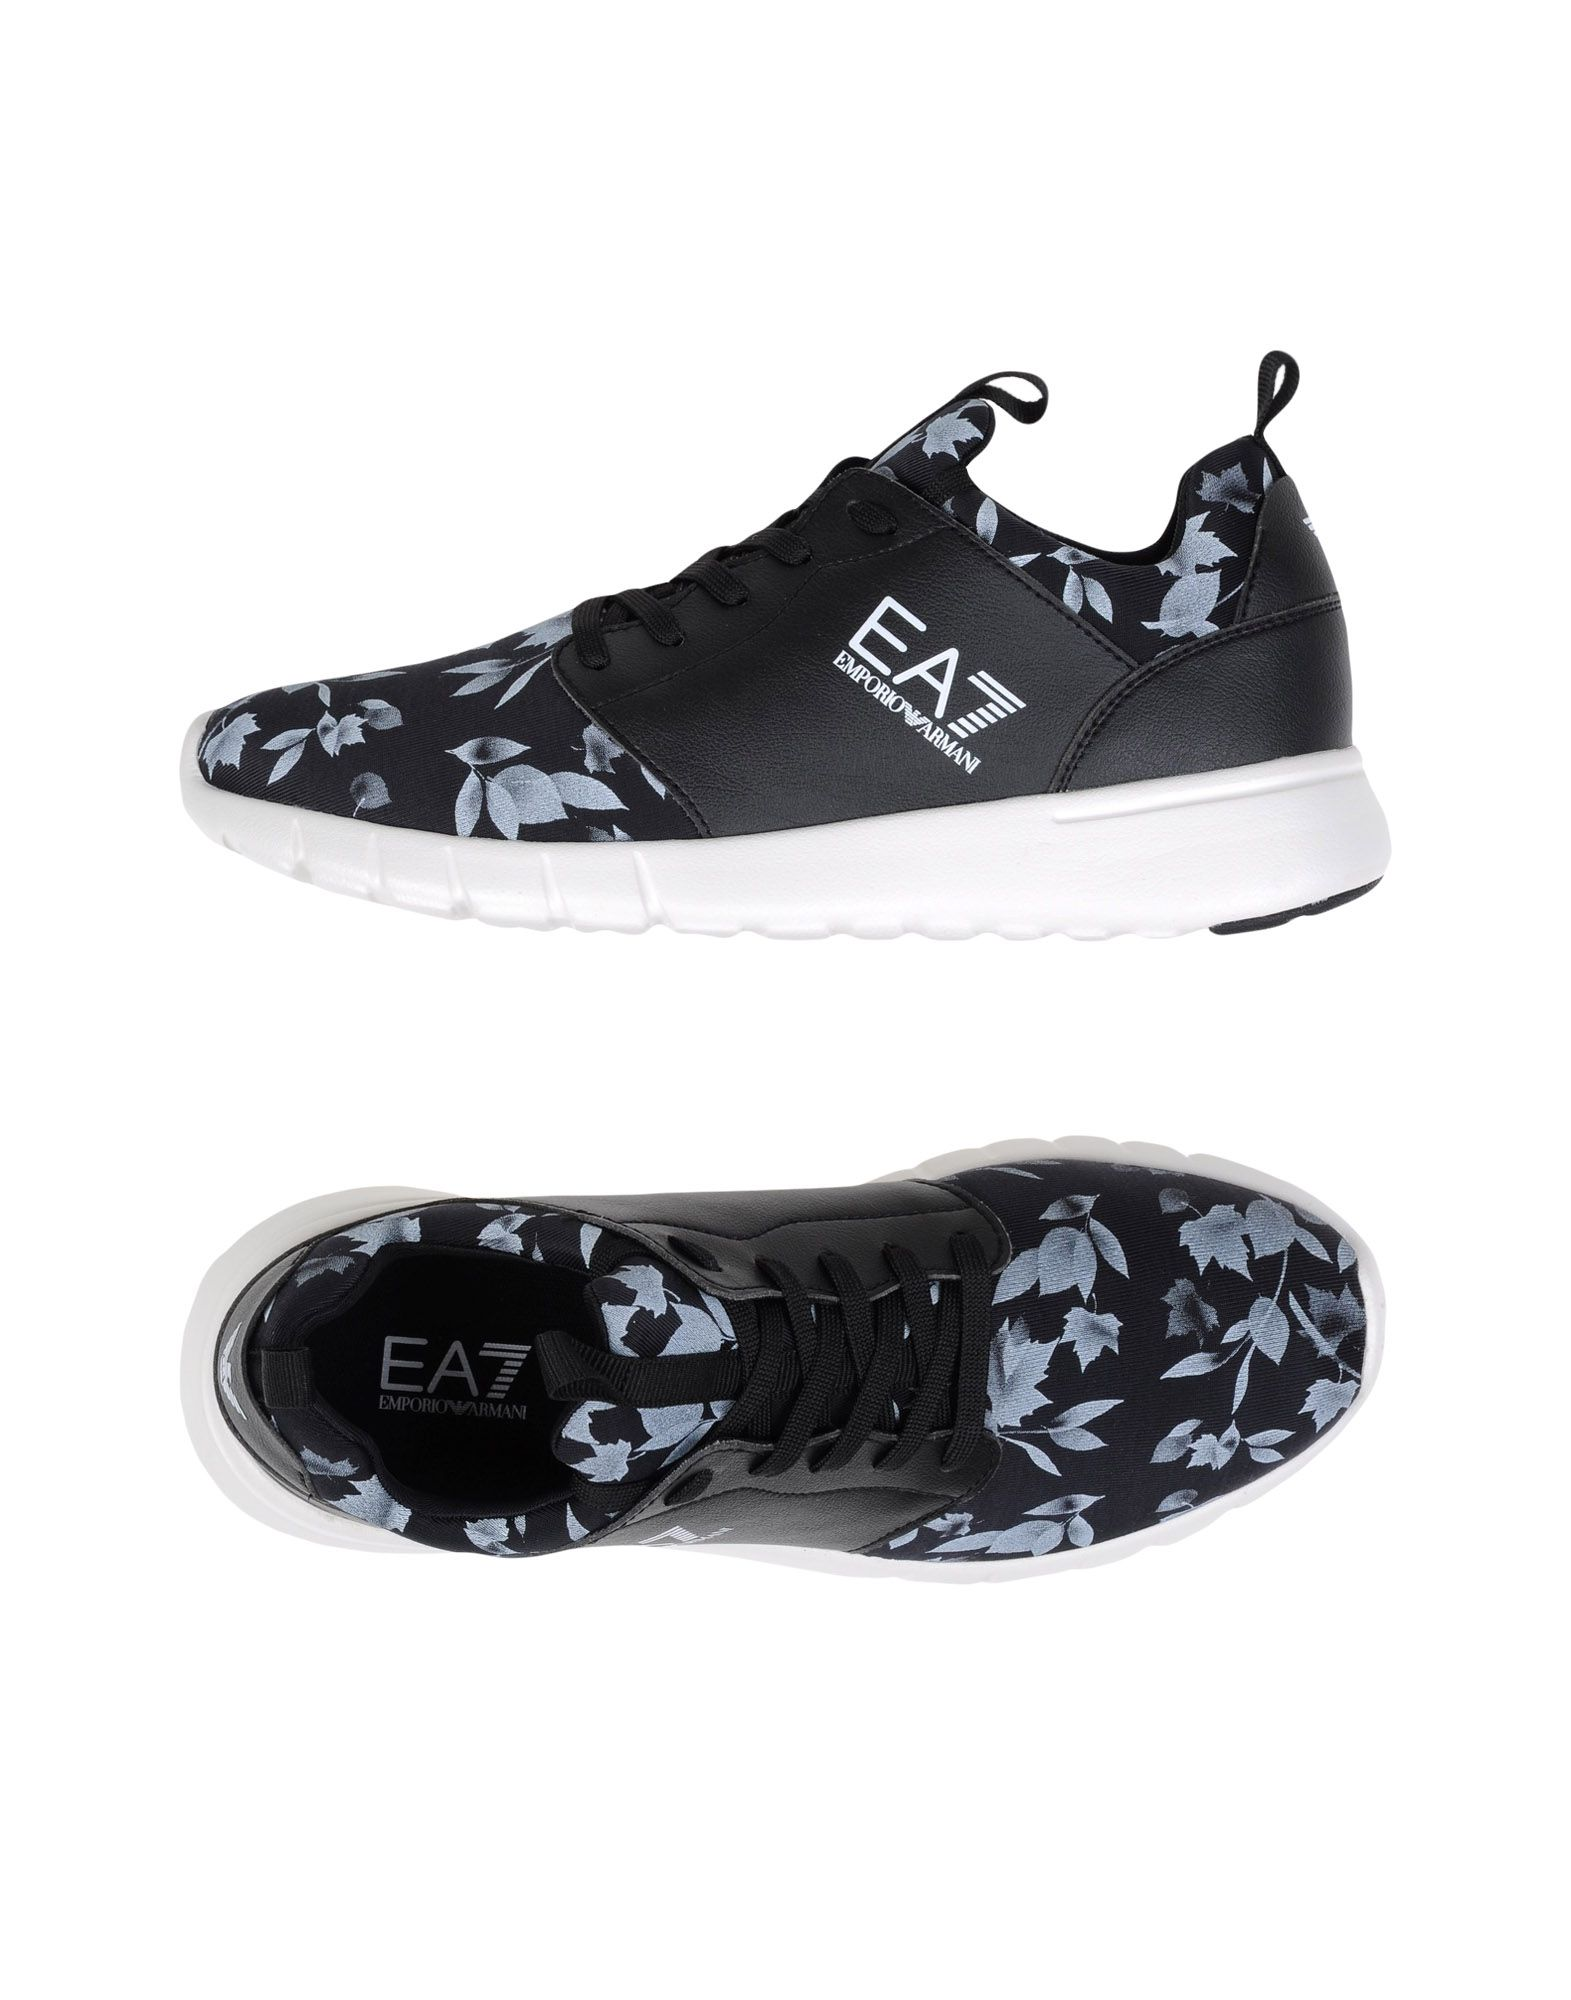 Sneakers Ea7 Lifestyle New Race Stampa Foglia - Donna - 11115829KW